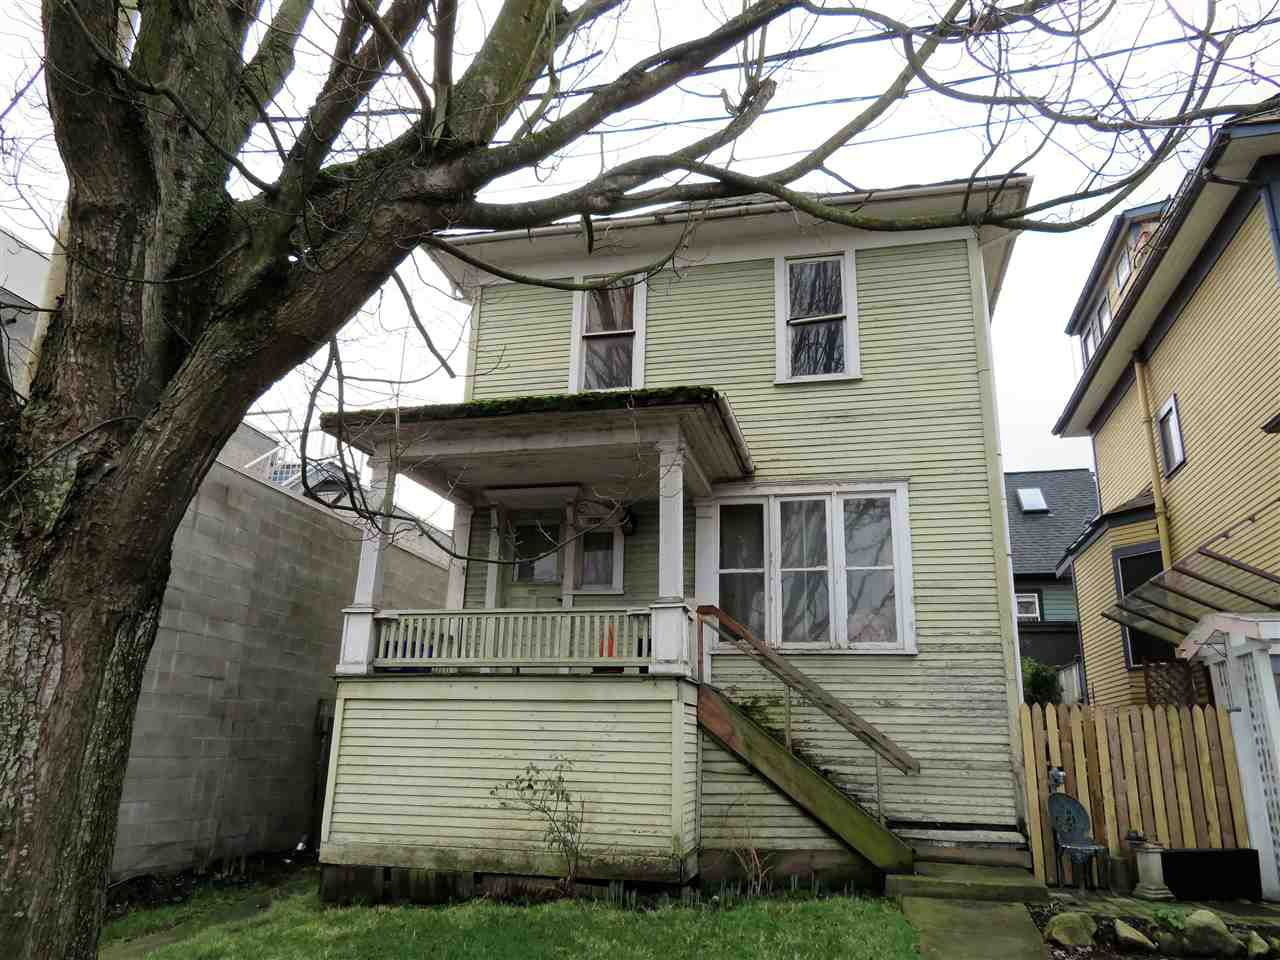 Main Photo: 2314 ONTARIO Street in Vancouver: Mount Pleasant VE House for sale (Vancouver East)  : MLS®# R2236005